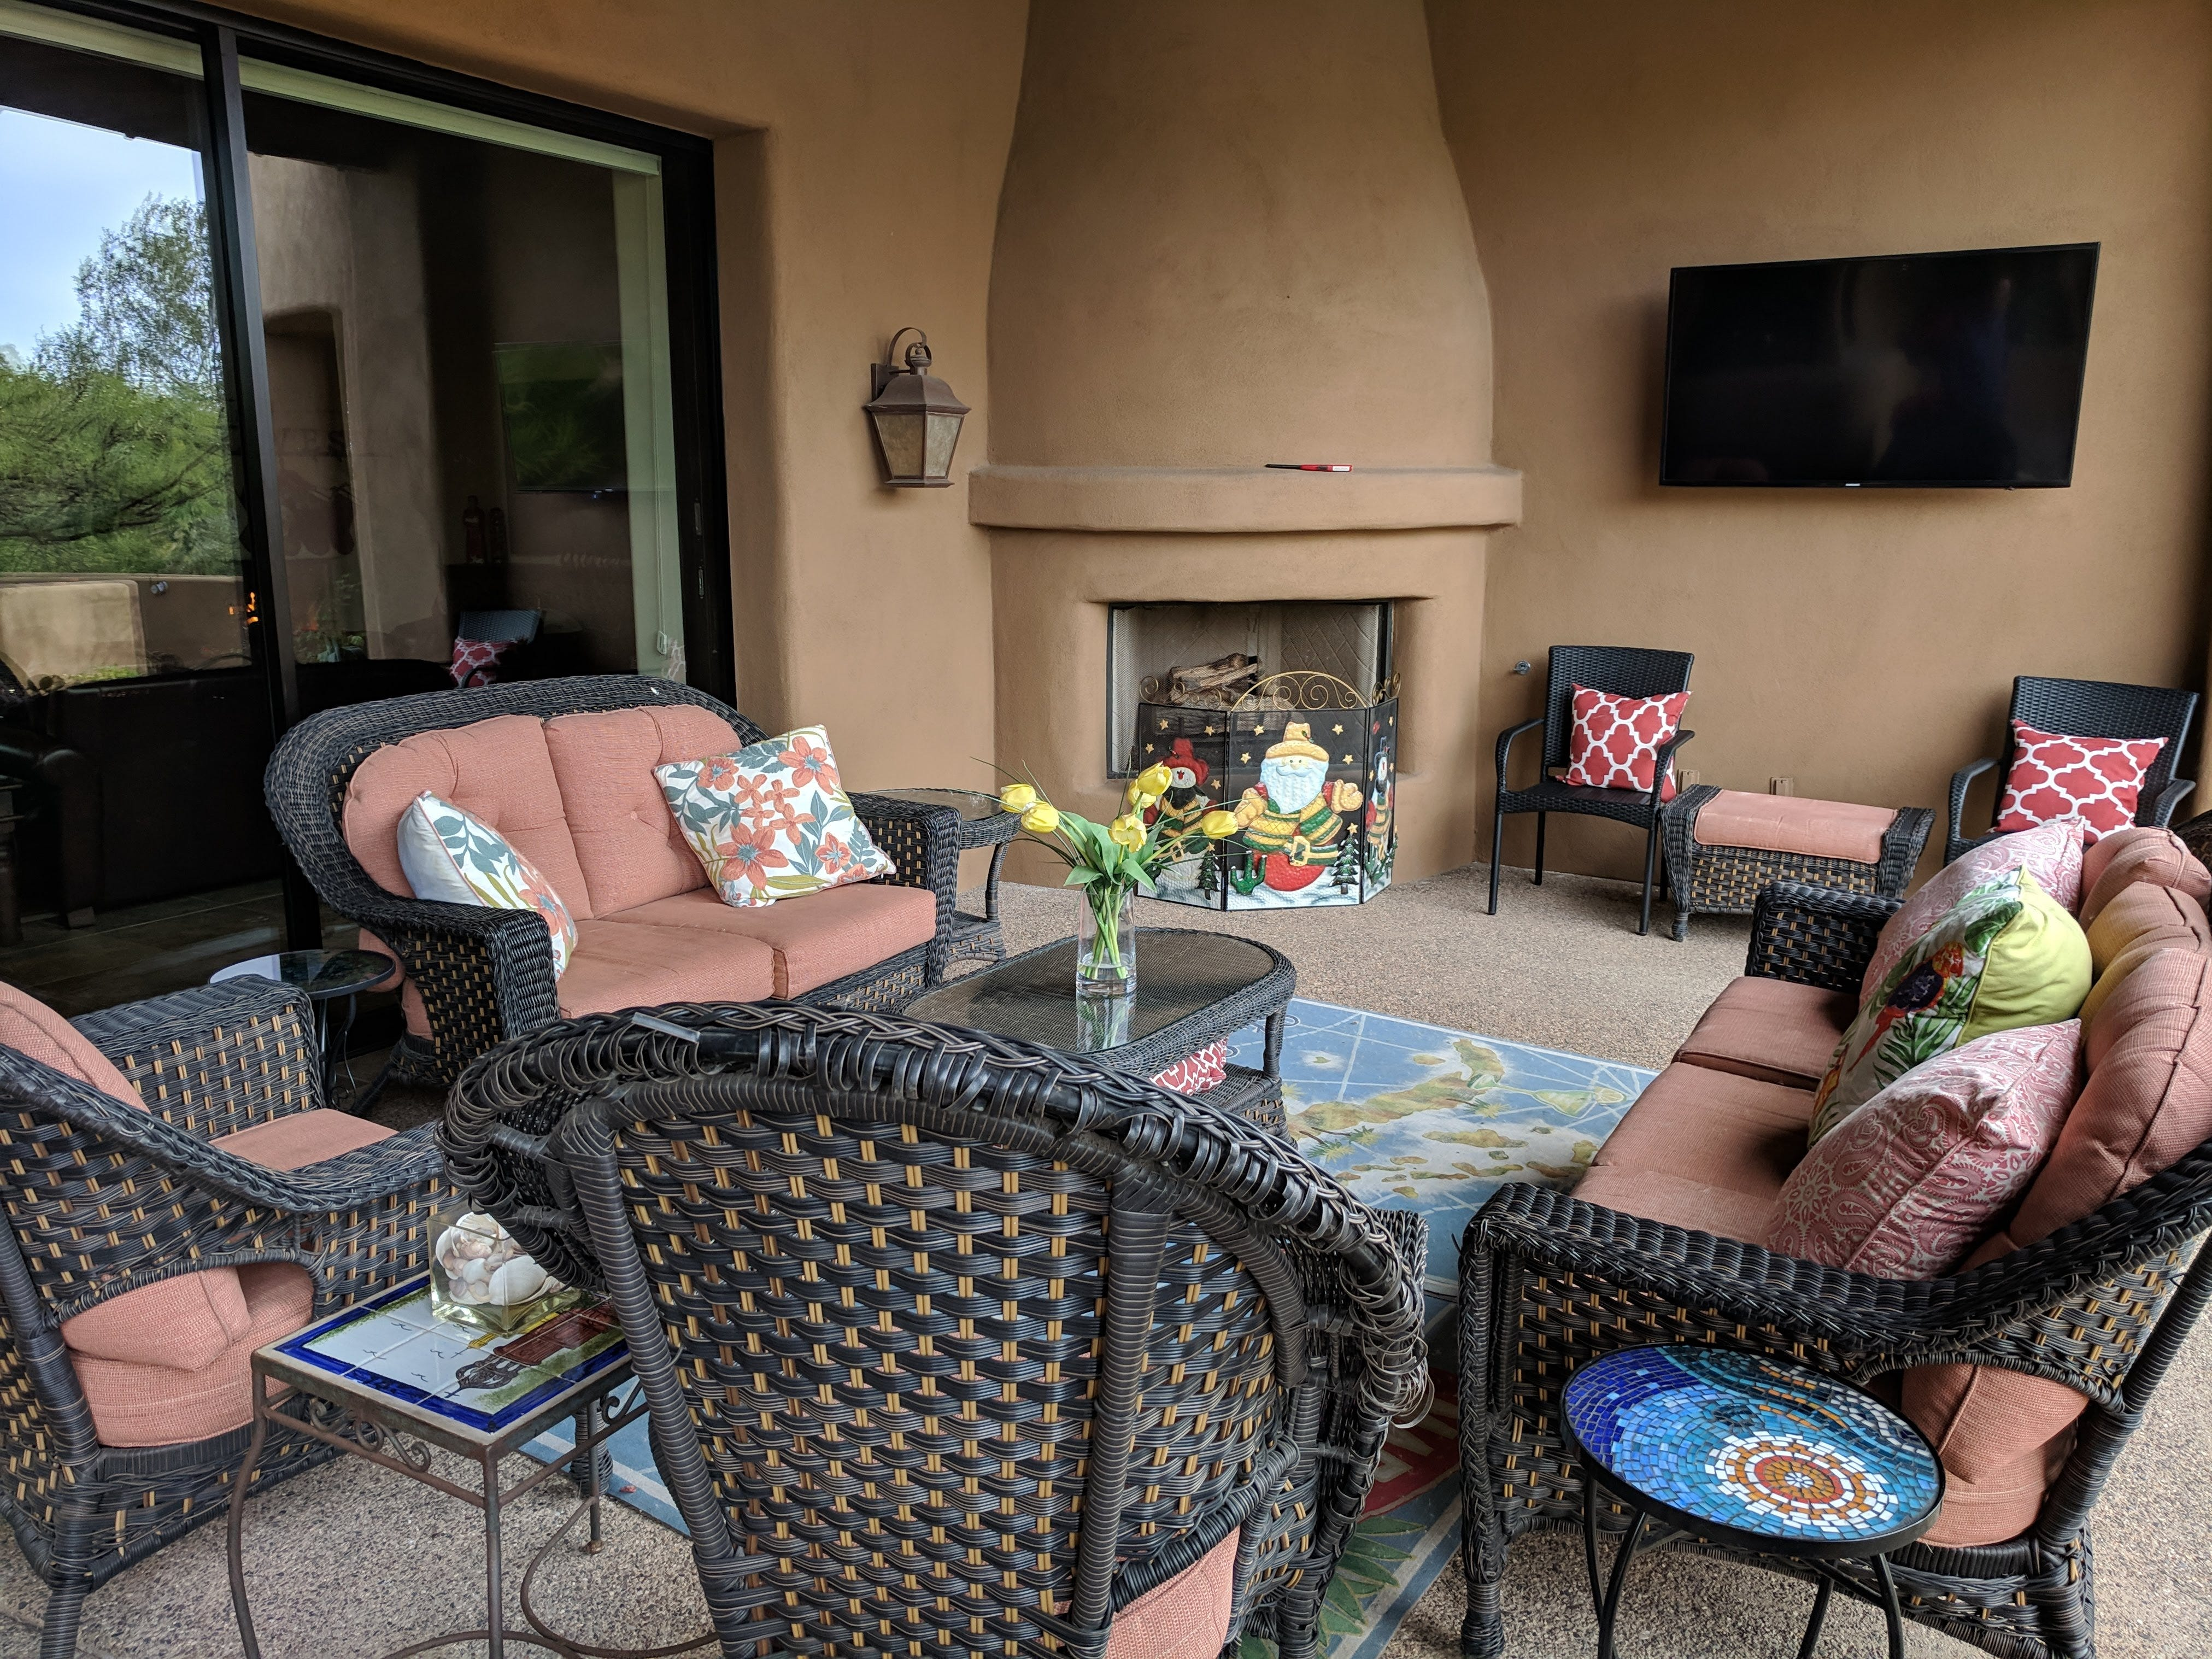 Equipped with a fireplace, this patio is the favorite spot for the Reaves' granddaughter as it provides a view of the rock formation she named.